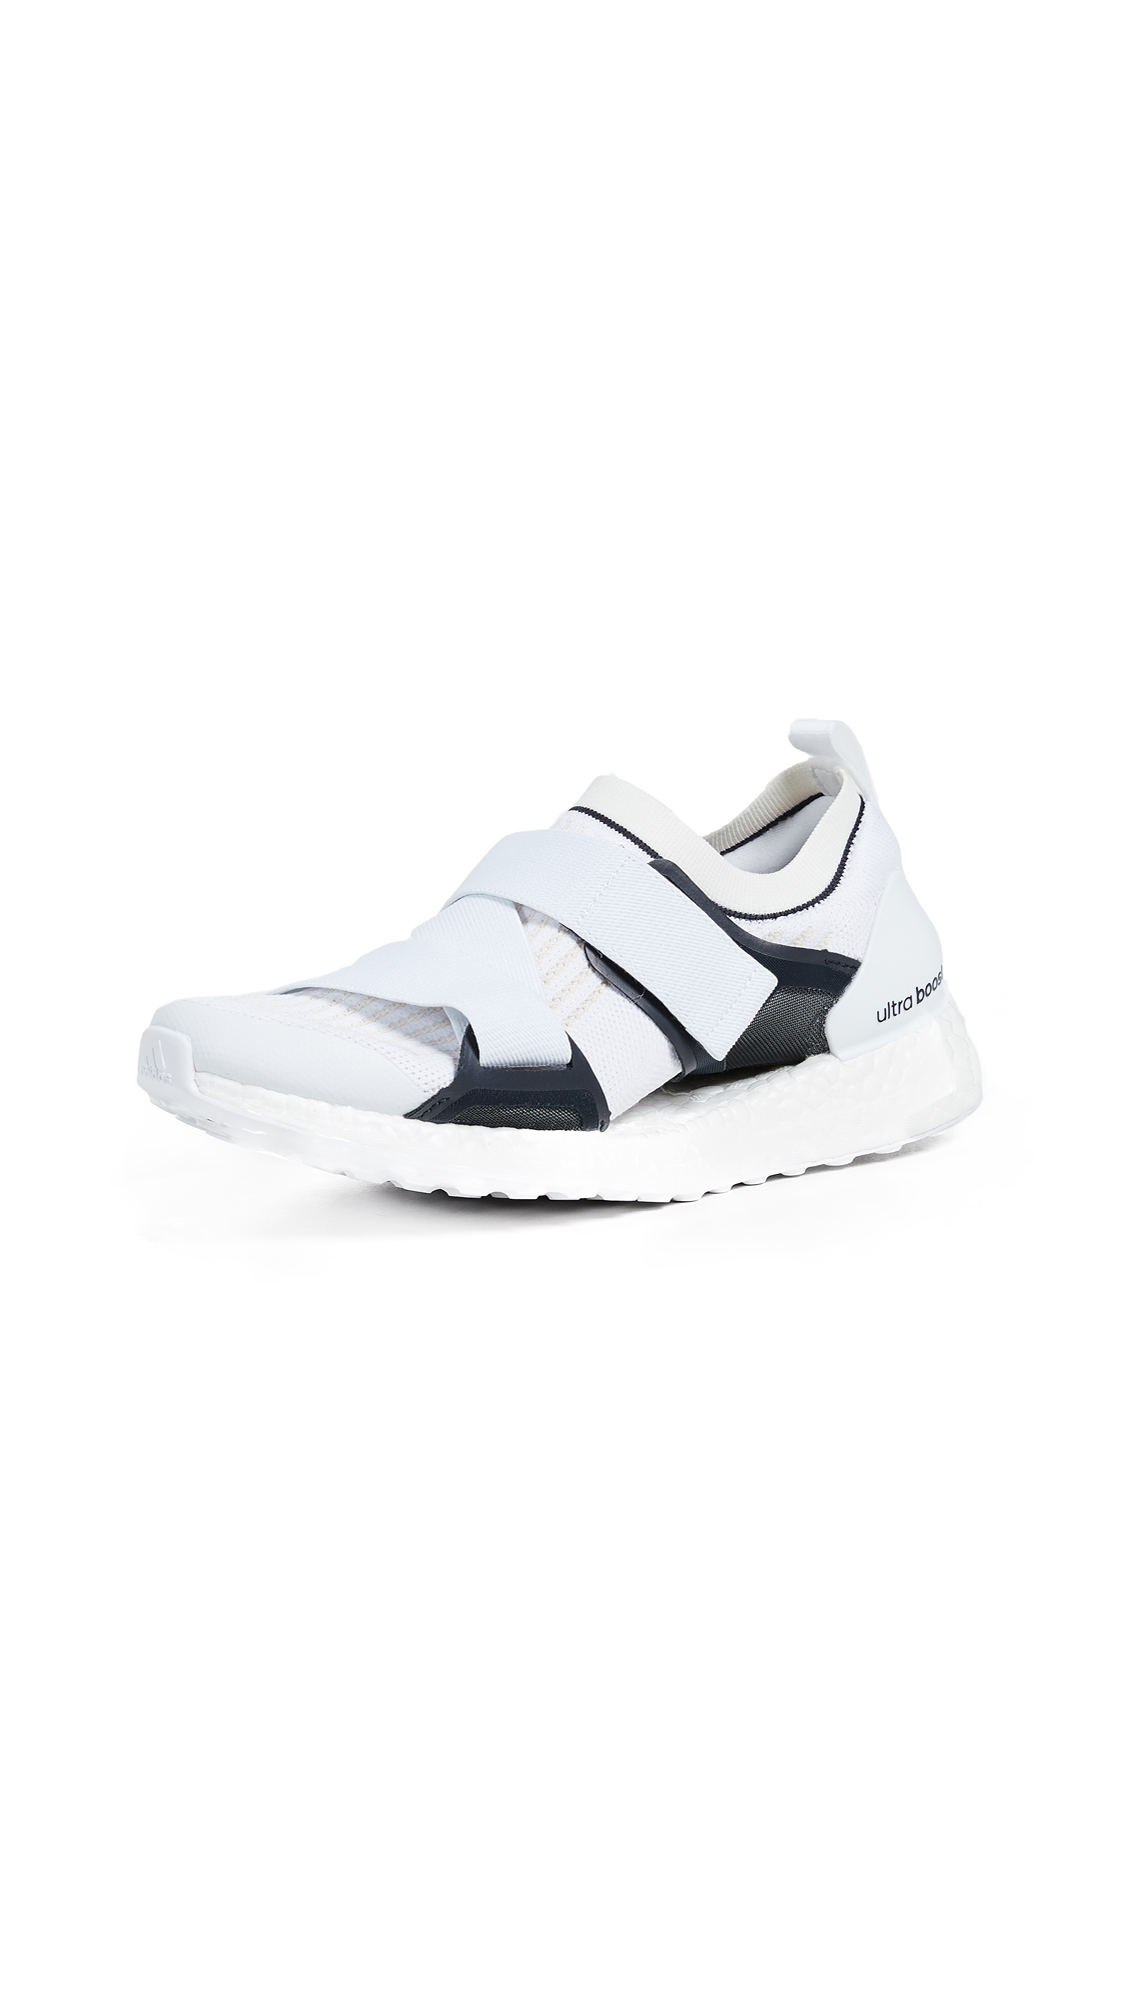 adidas by Stella McCartney UltraBOOST X Sneakers - White/Chalk White/Night Grey